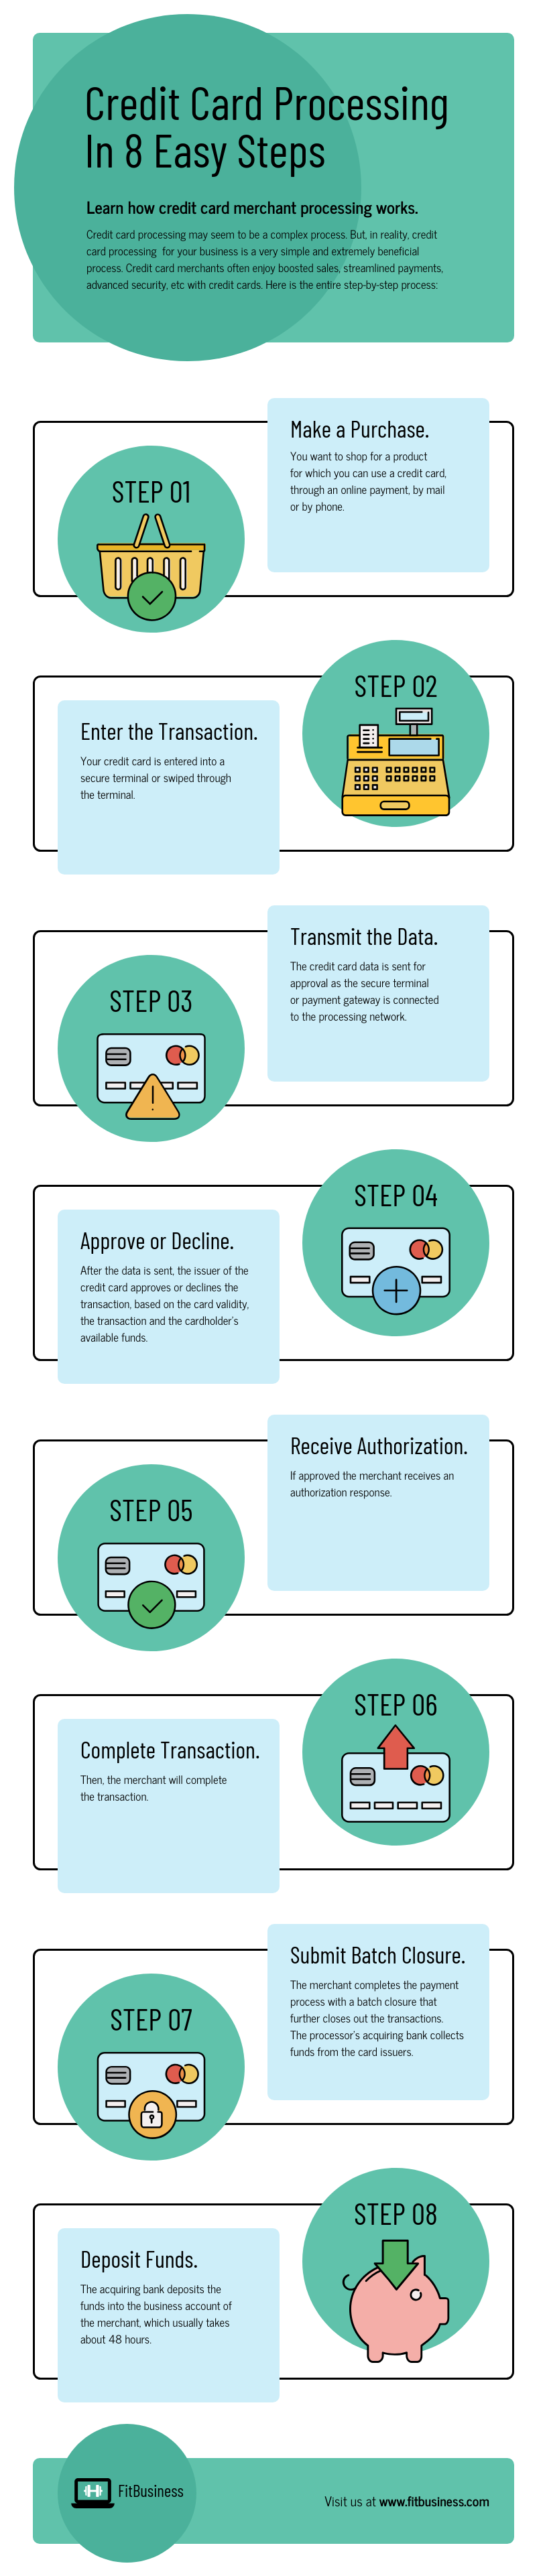 Credit Card Processing Infographic Template